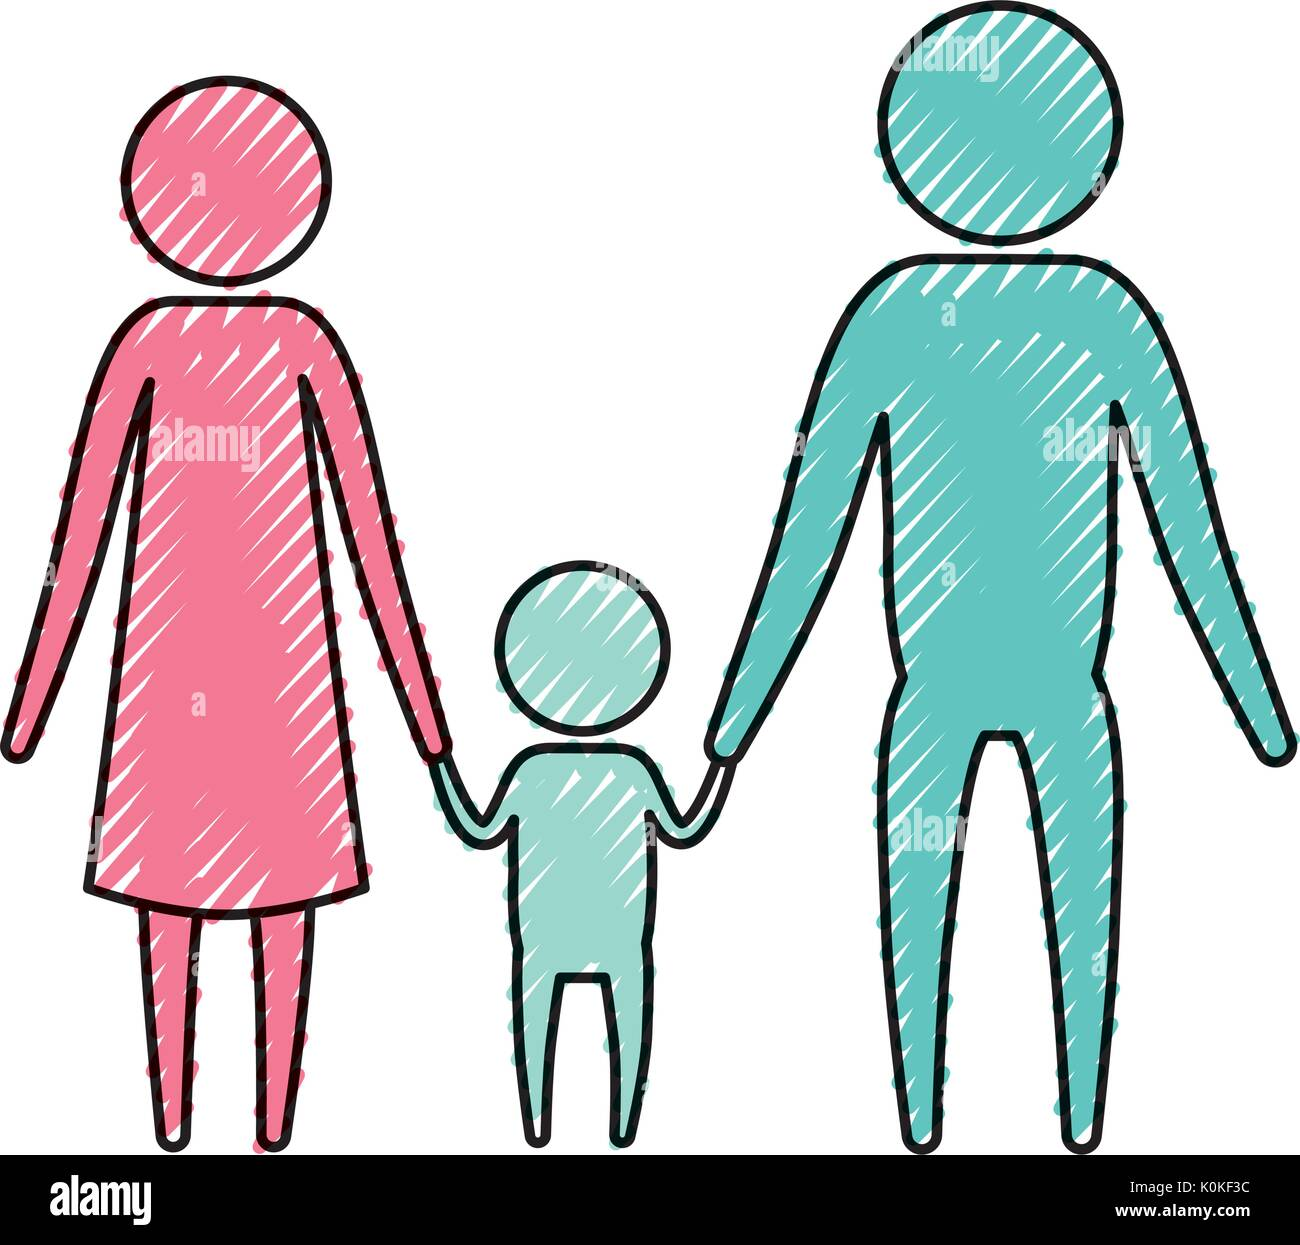 color crayon silhouette pictogram parents with a little boy holding hands - Stock Vector